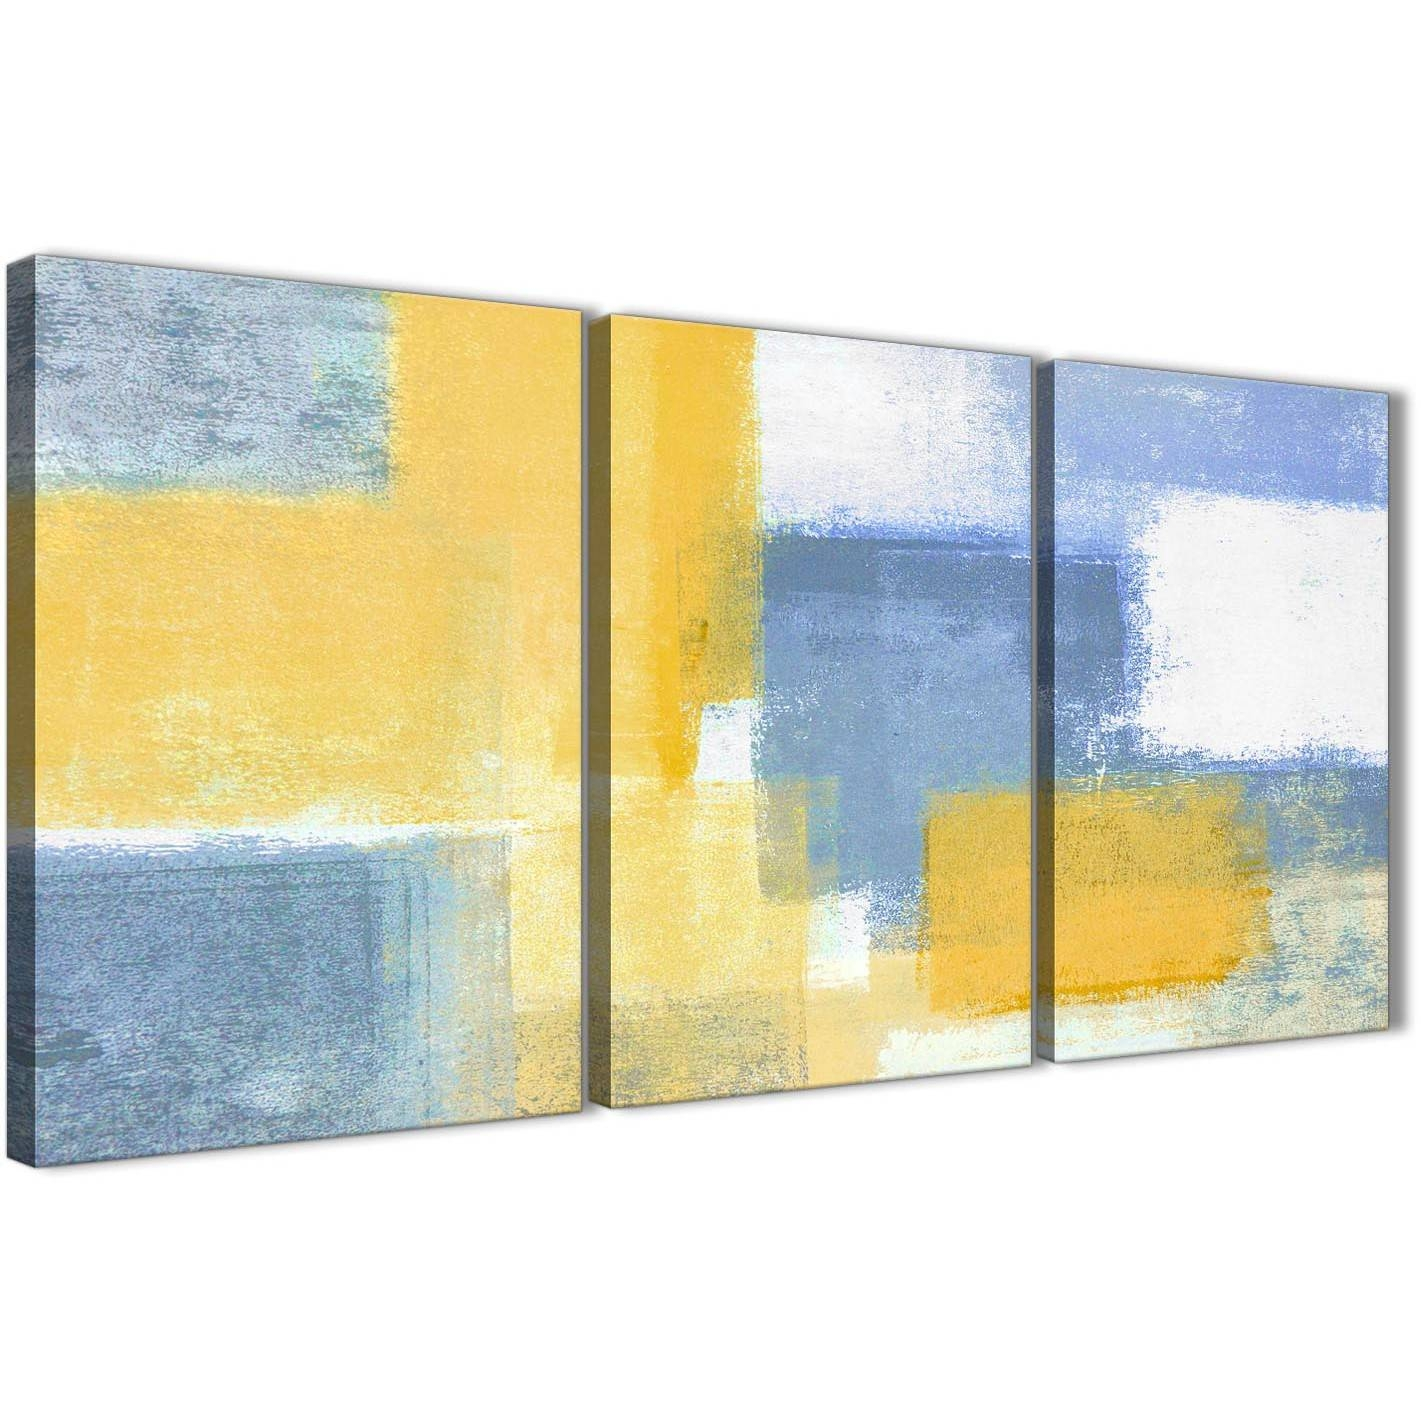 20 Inspirations of Yellow And Blue Wall Art